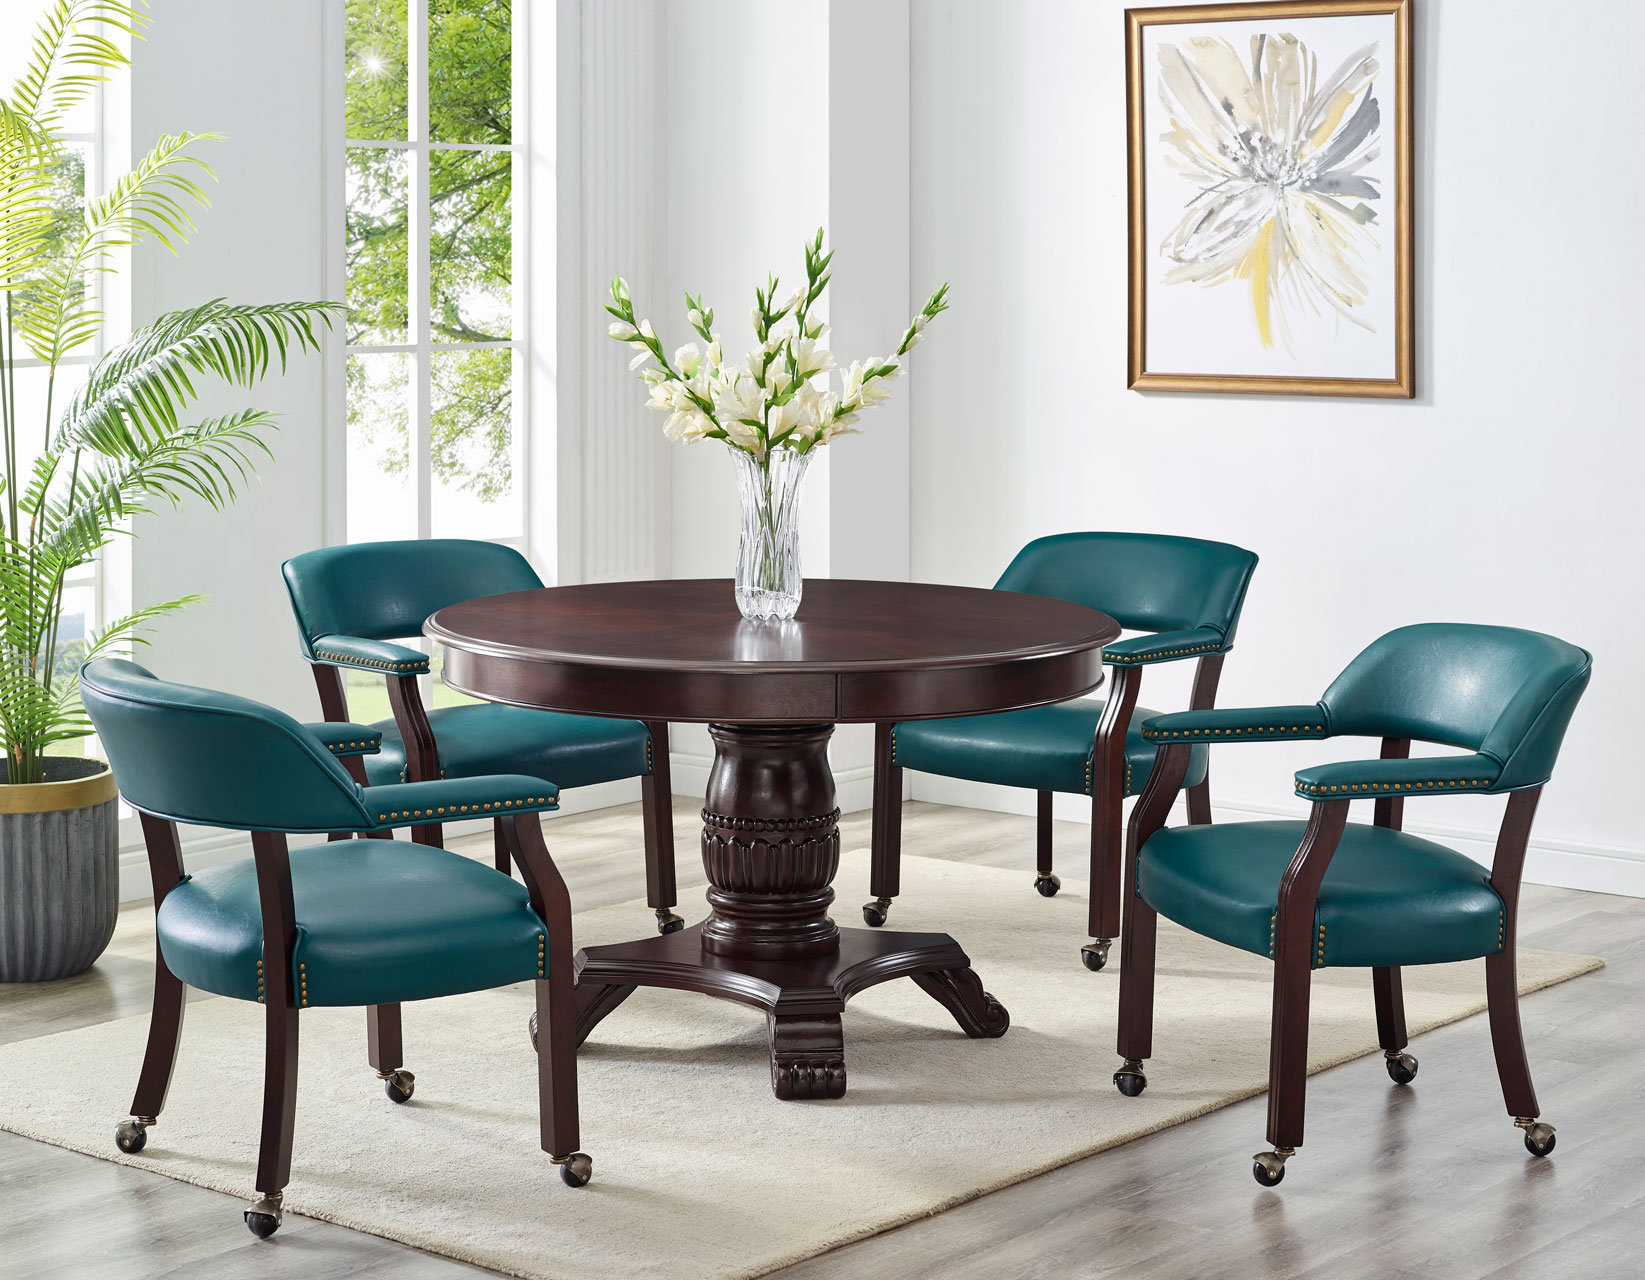 Game Table And Chairs Tournament 6, Round Gaming Table With Chairs